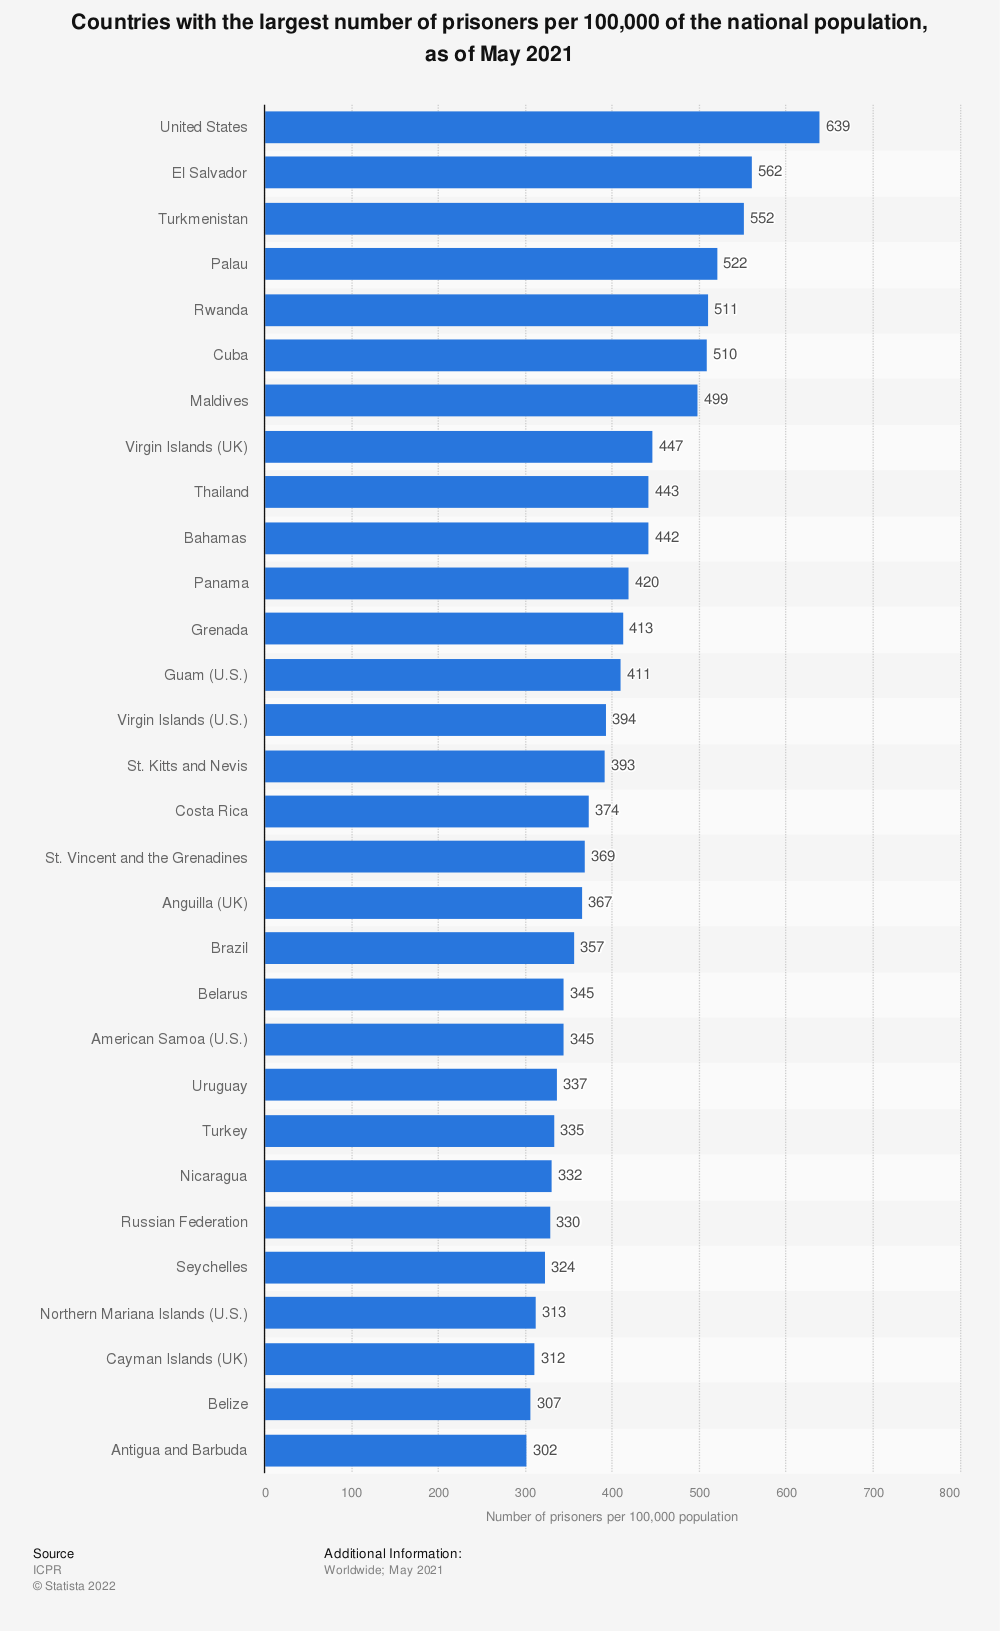 Countries with the most prisoners per 100,000 inhabitants, as of 2013